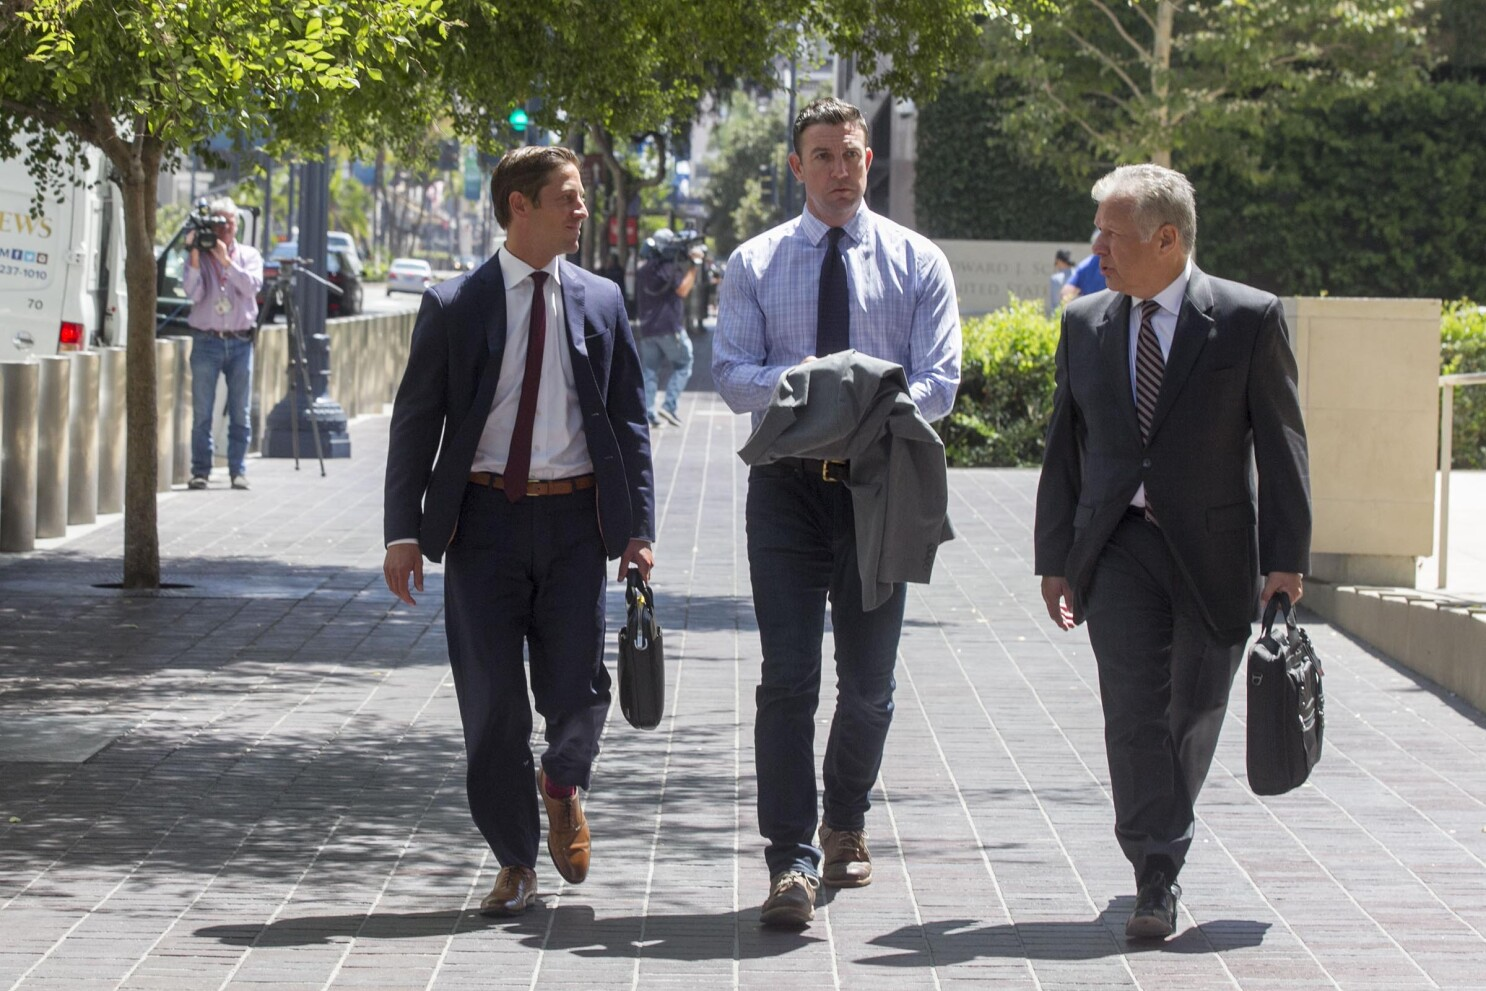 Rep. Duncan Hunter to shrink his criminal defense team ahead of trial in January